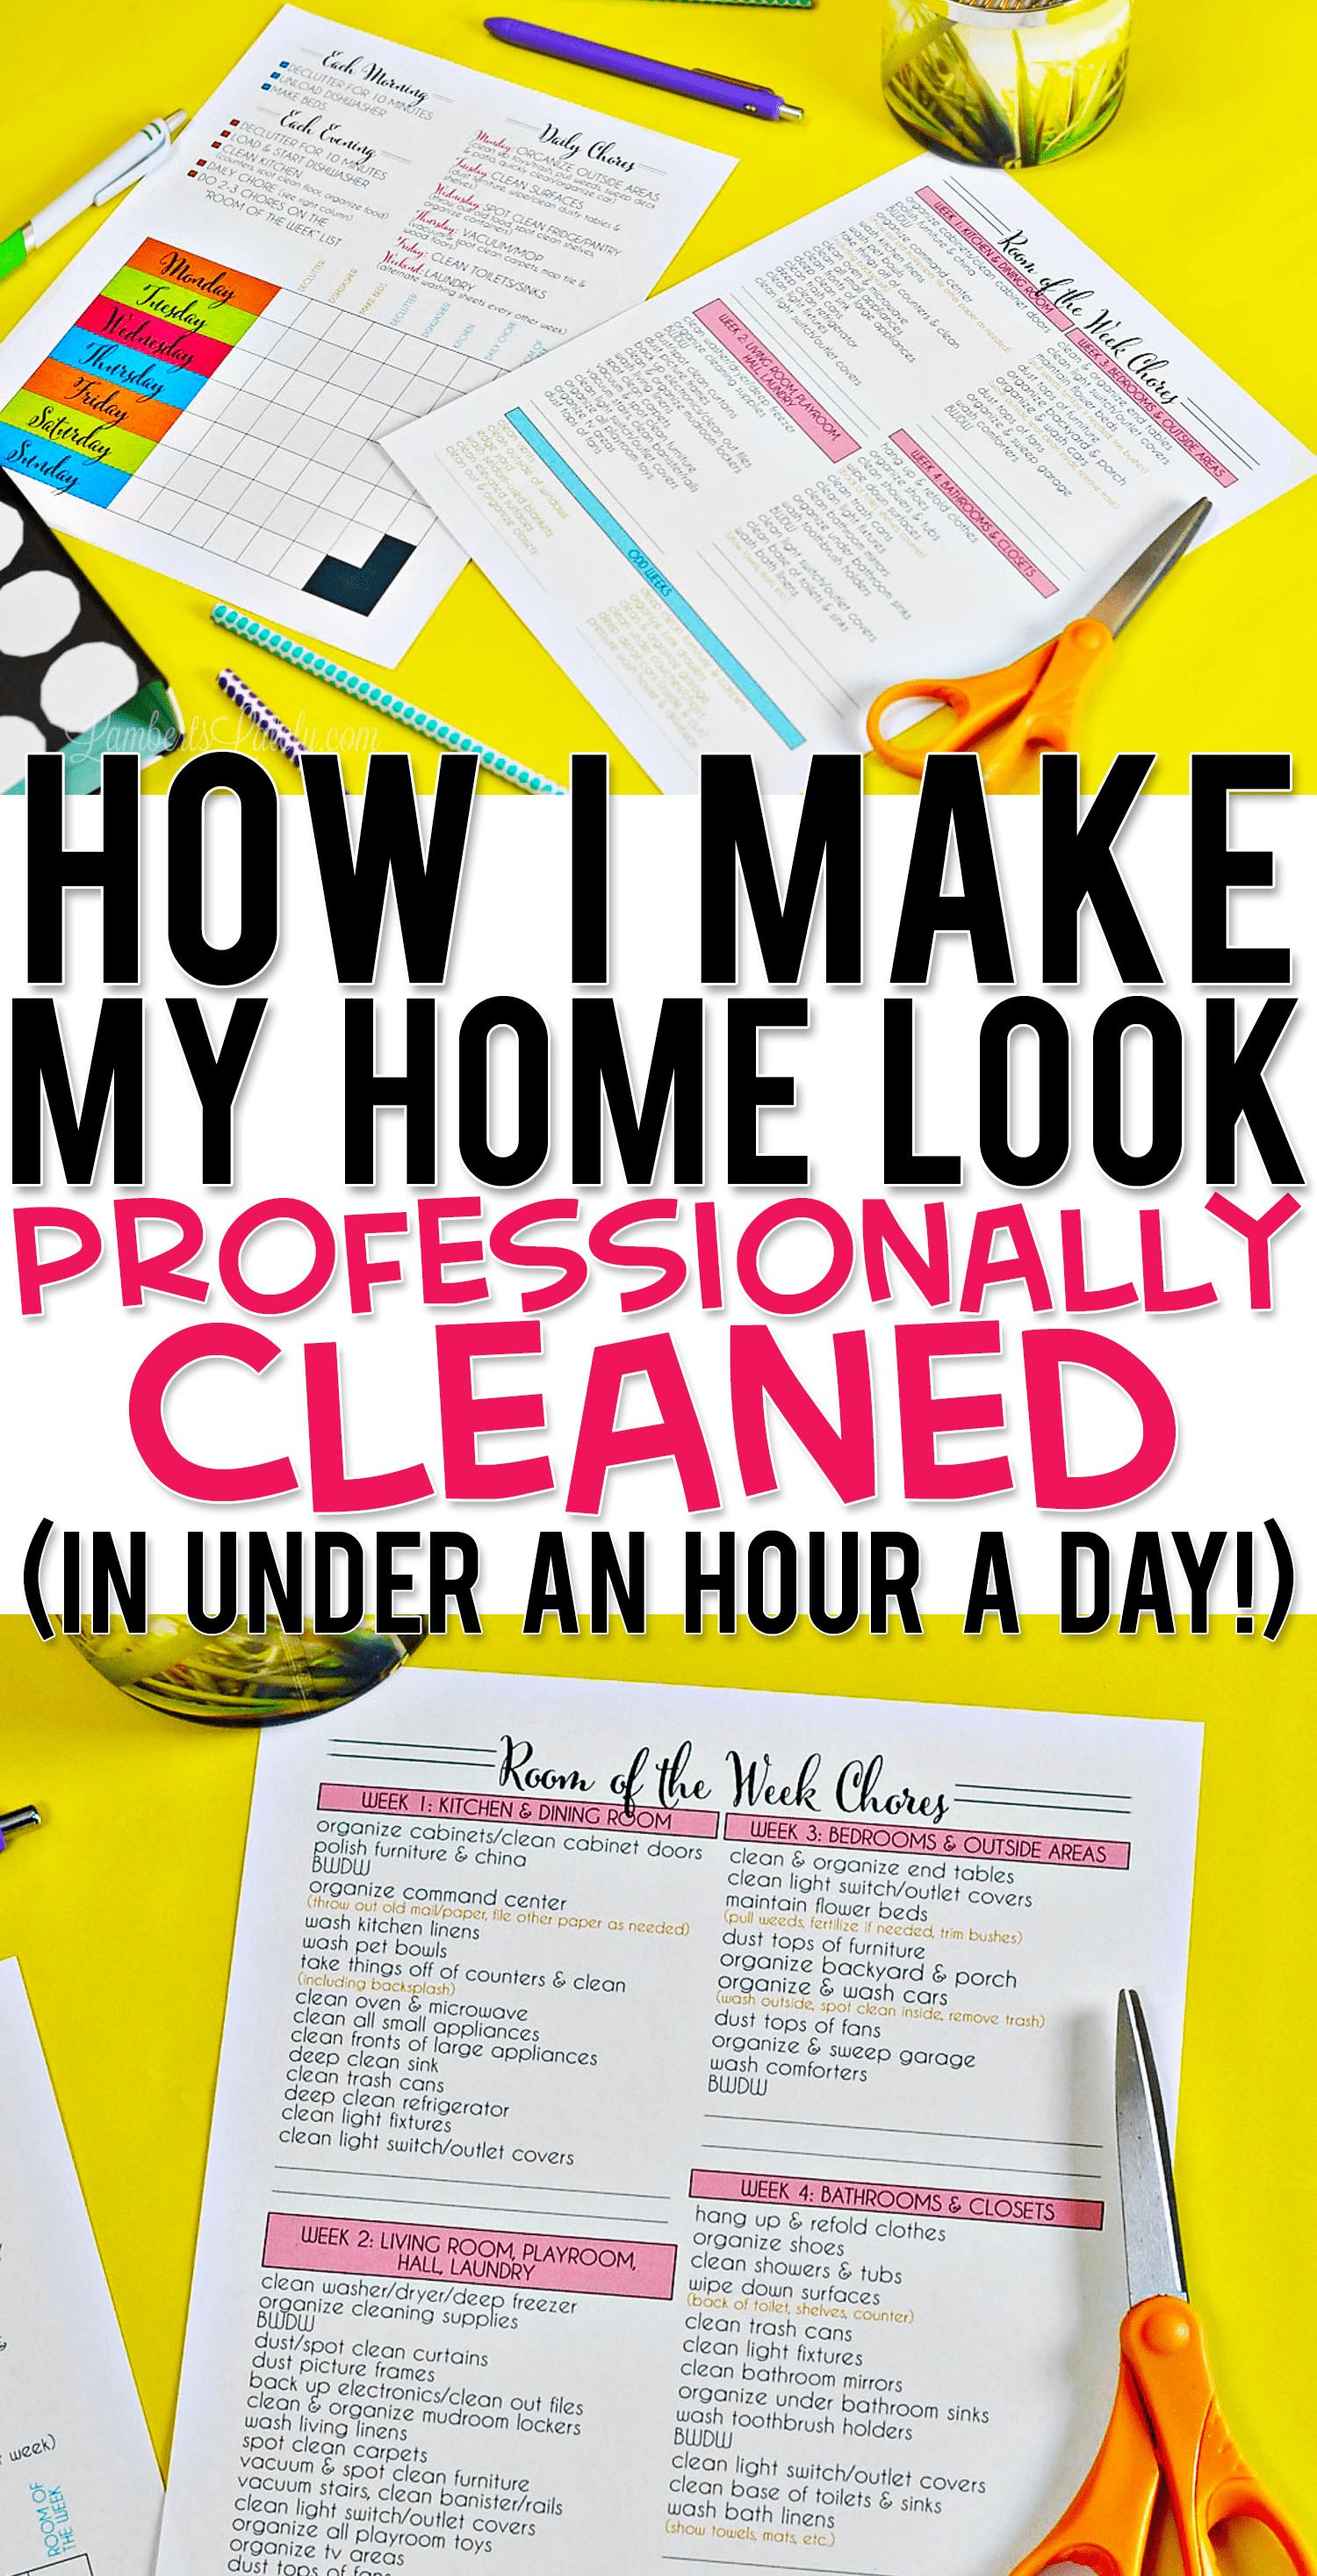 How I Make My Home Look Professionally Cleaned (in under an hour a day!) | Lamberts Lately